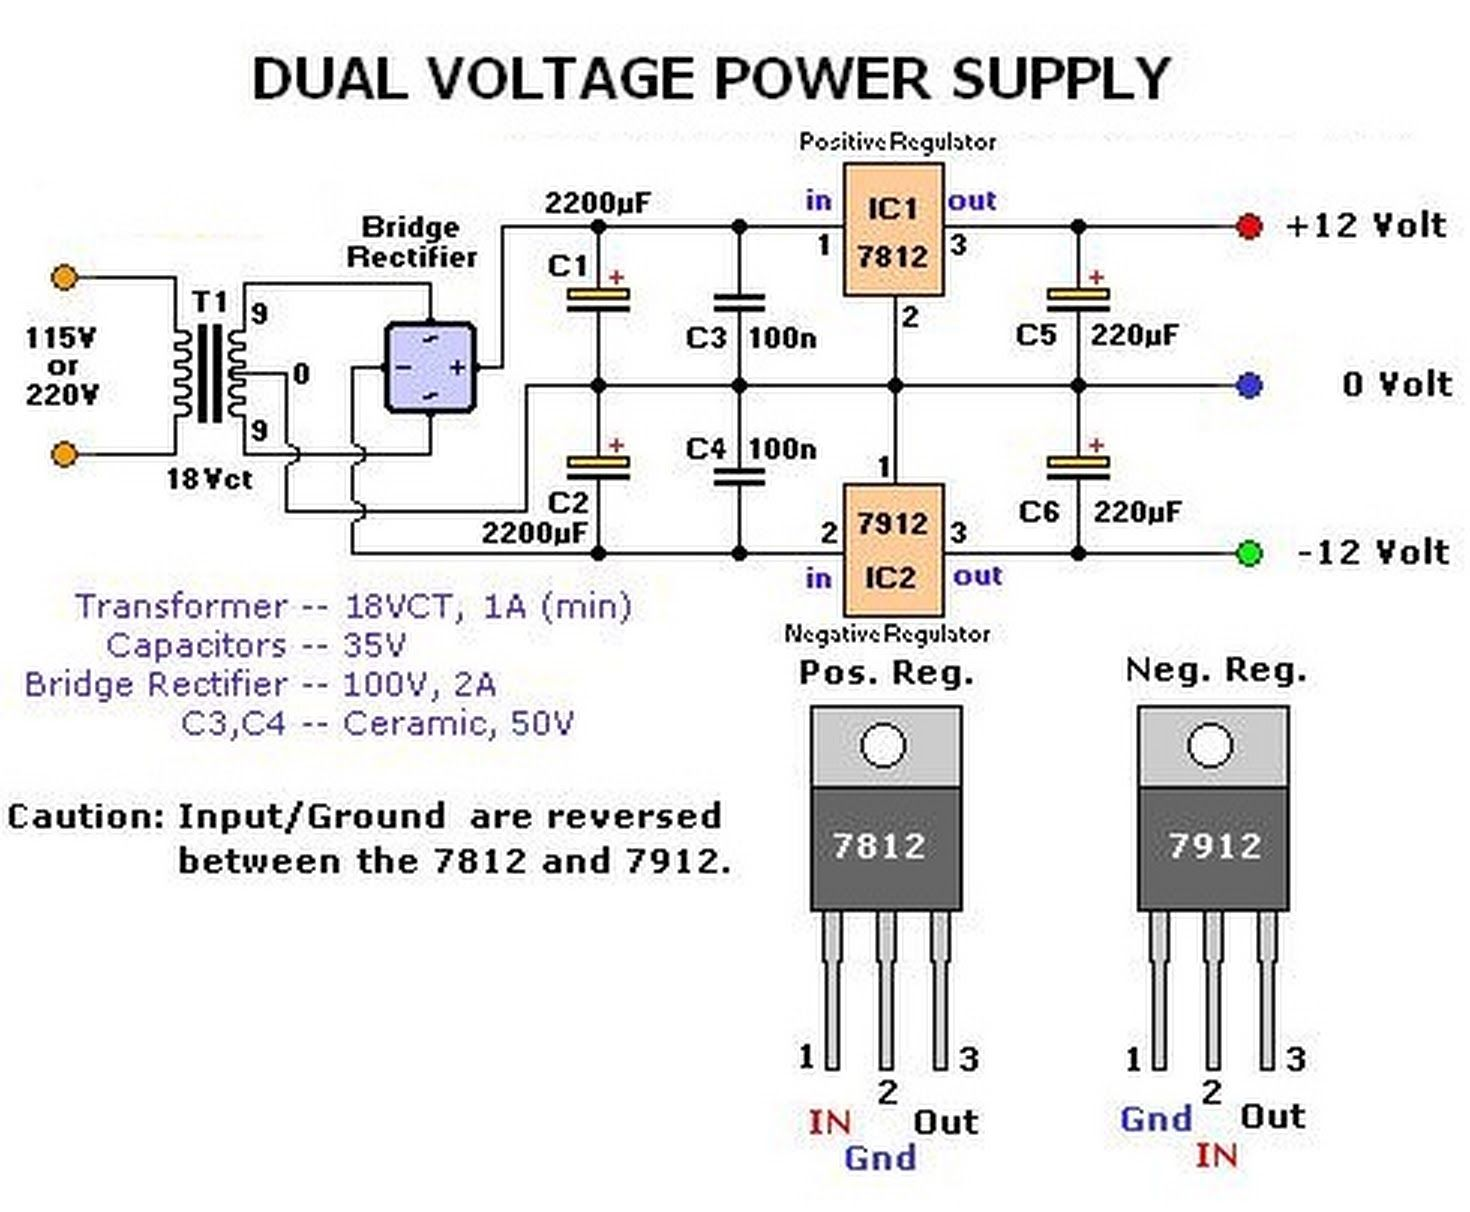 Dual Voltage Power Supply